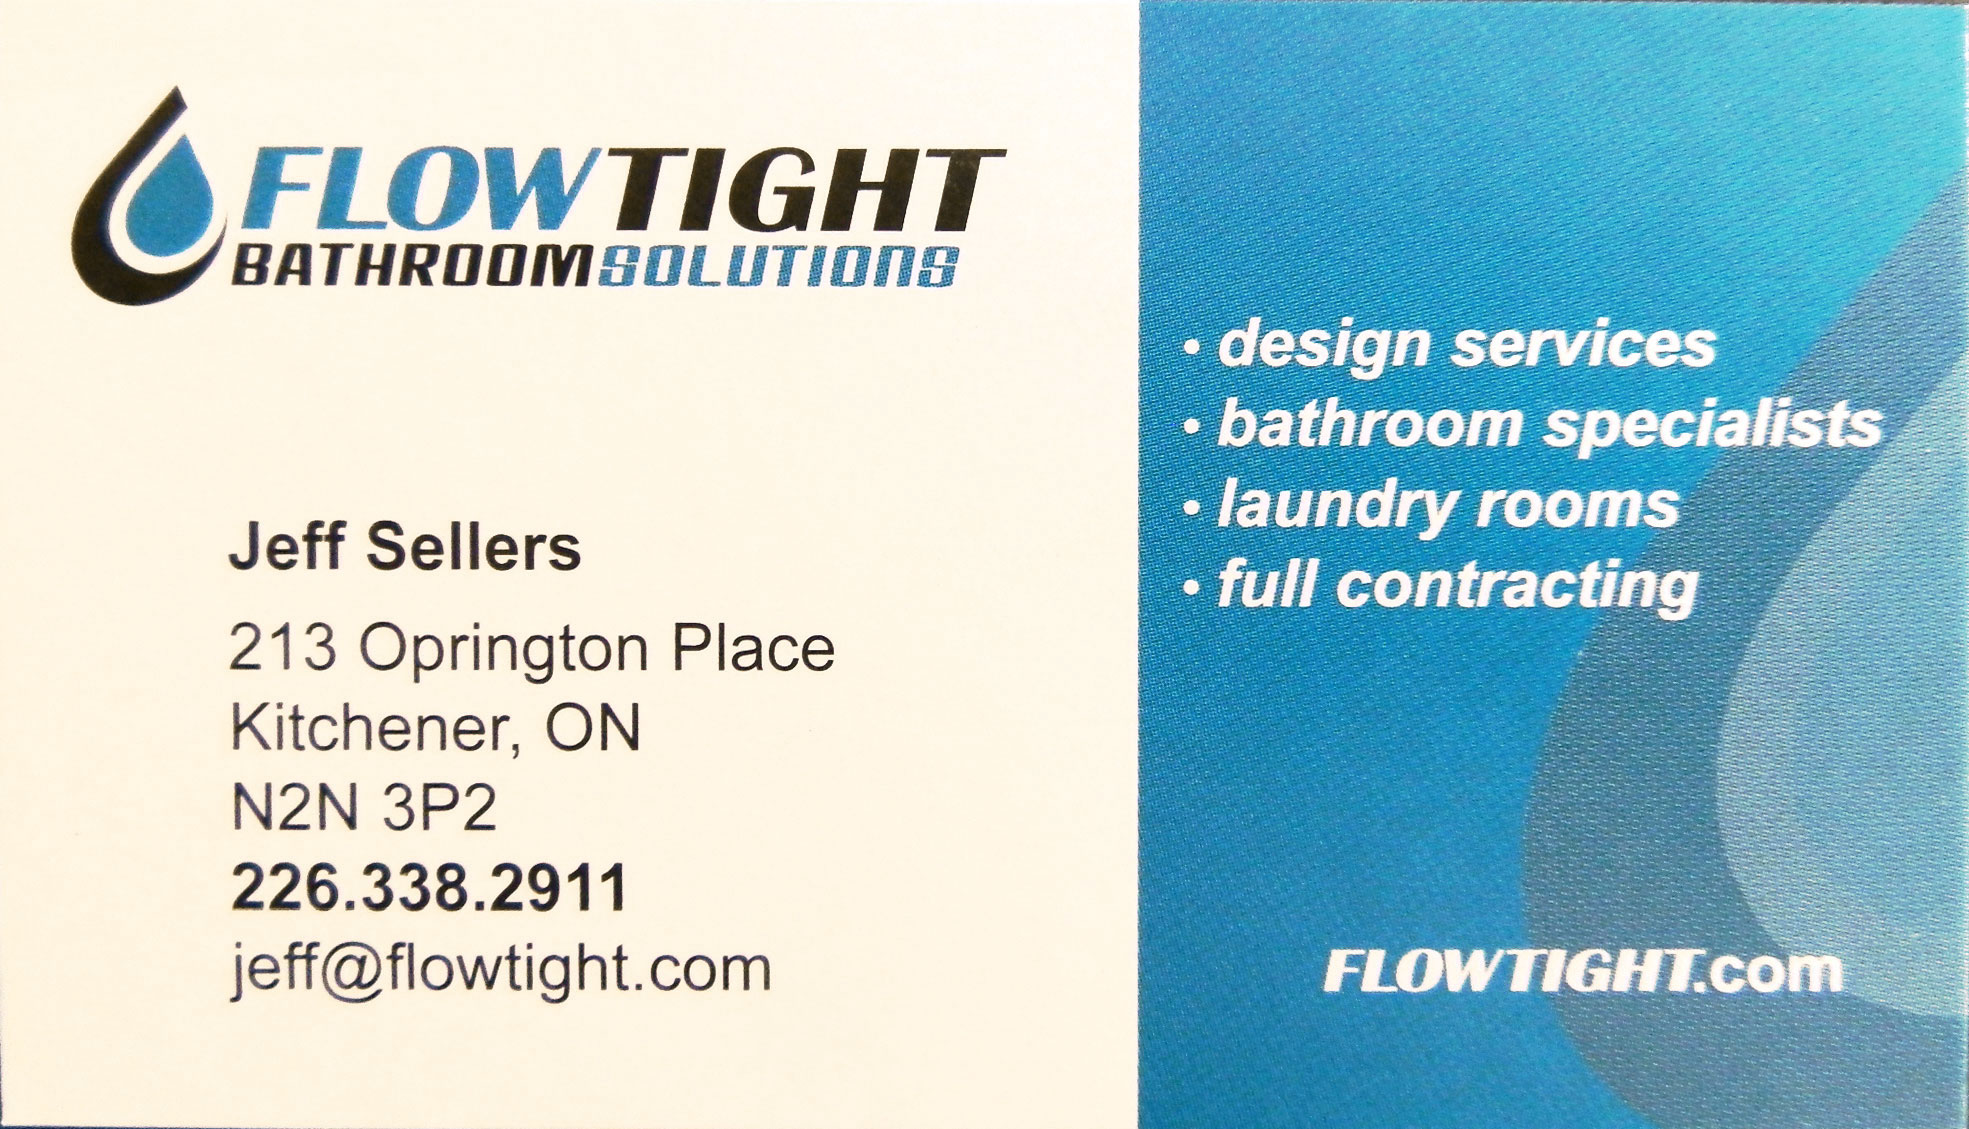 Flow Tight Bathroom Solutions